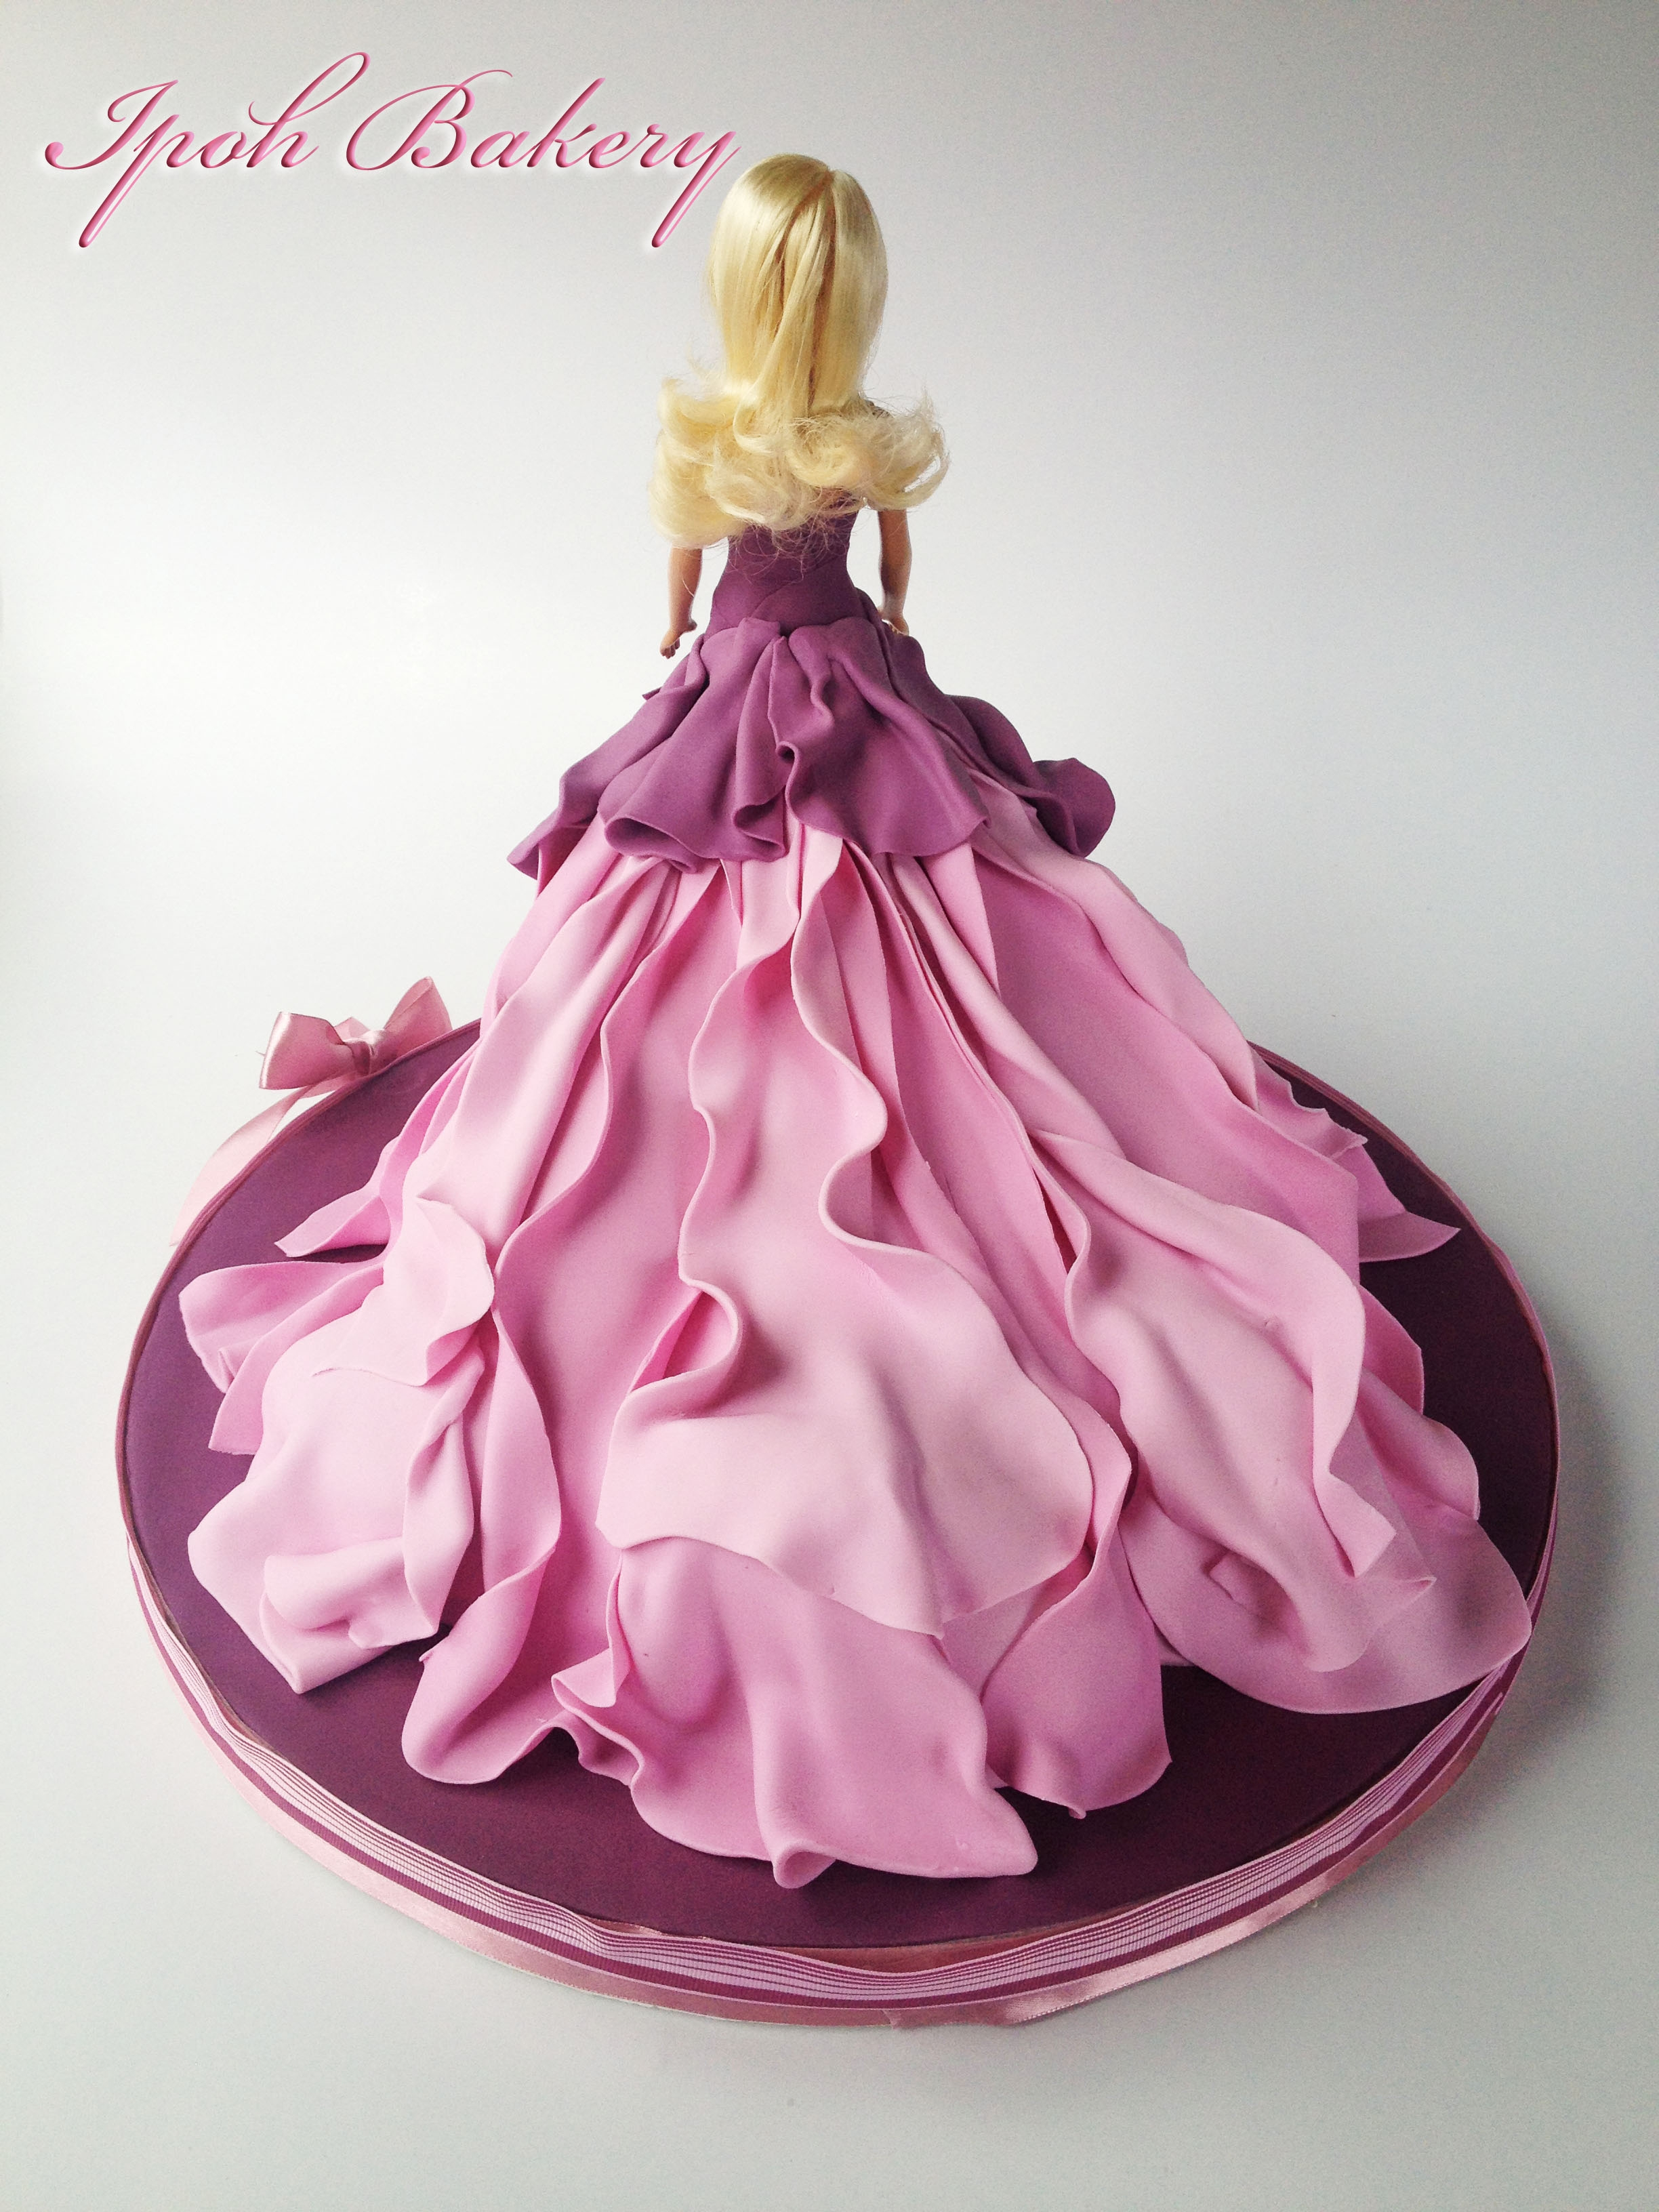 Barbie Doll Cake Decorating Ideas : A Different Take On The Barbie Doll Cake Instead Of A Dome ...